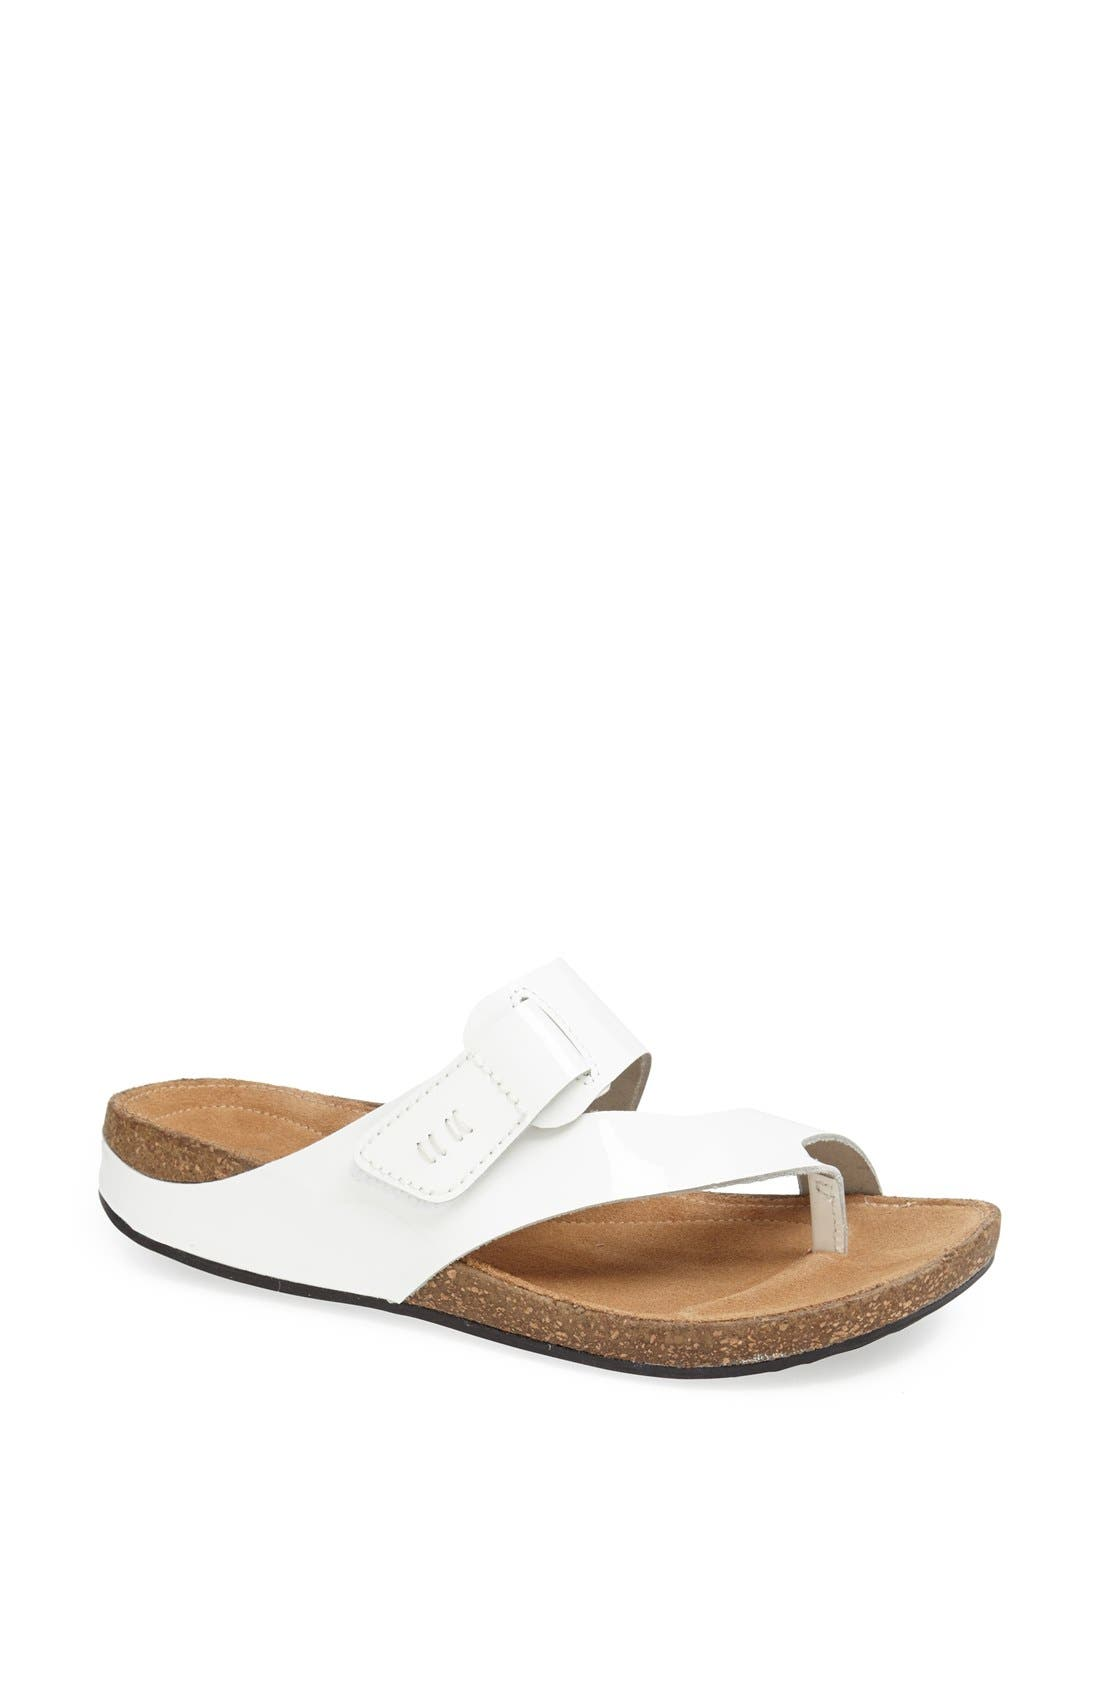 Clarks® 'Perri Coast' Leather Thong Sandal